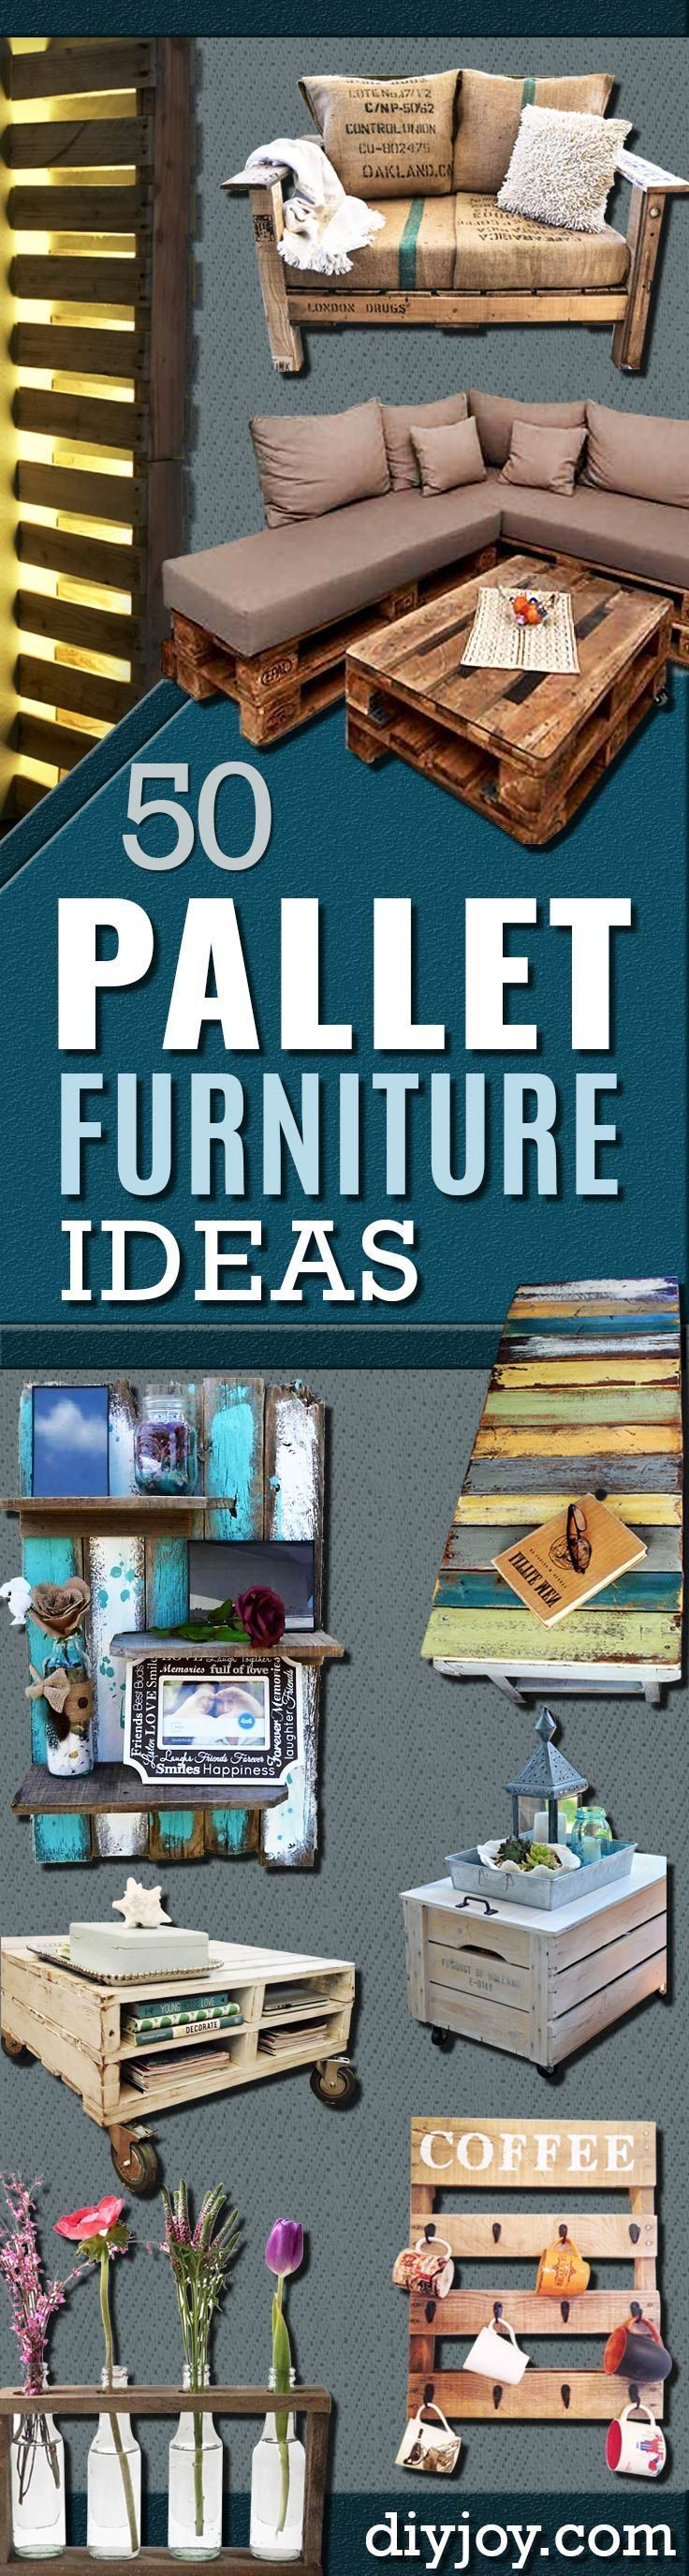 50 diy pallet furniture ideas pinterest couch dining table diy pallet furniture ideas best do it yourself projects made with wooden pallets indoor and outdoor bedroom living room patio solutioingenieria Image collections